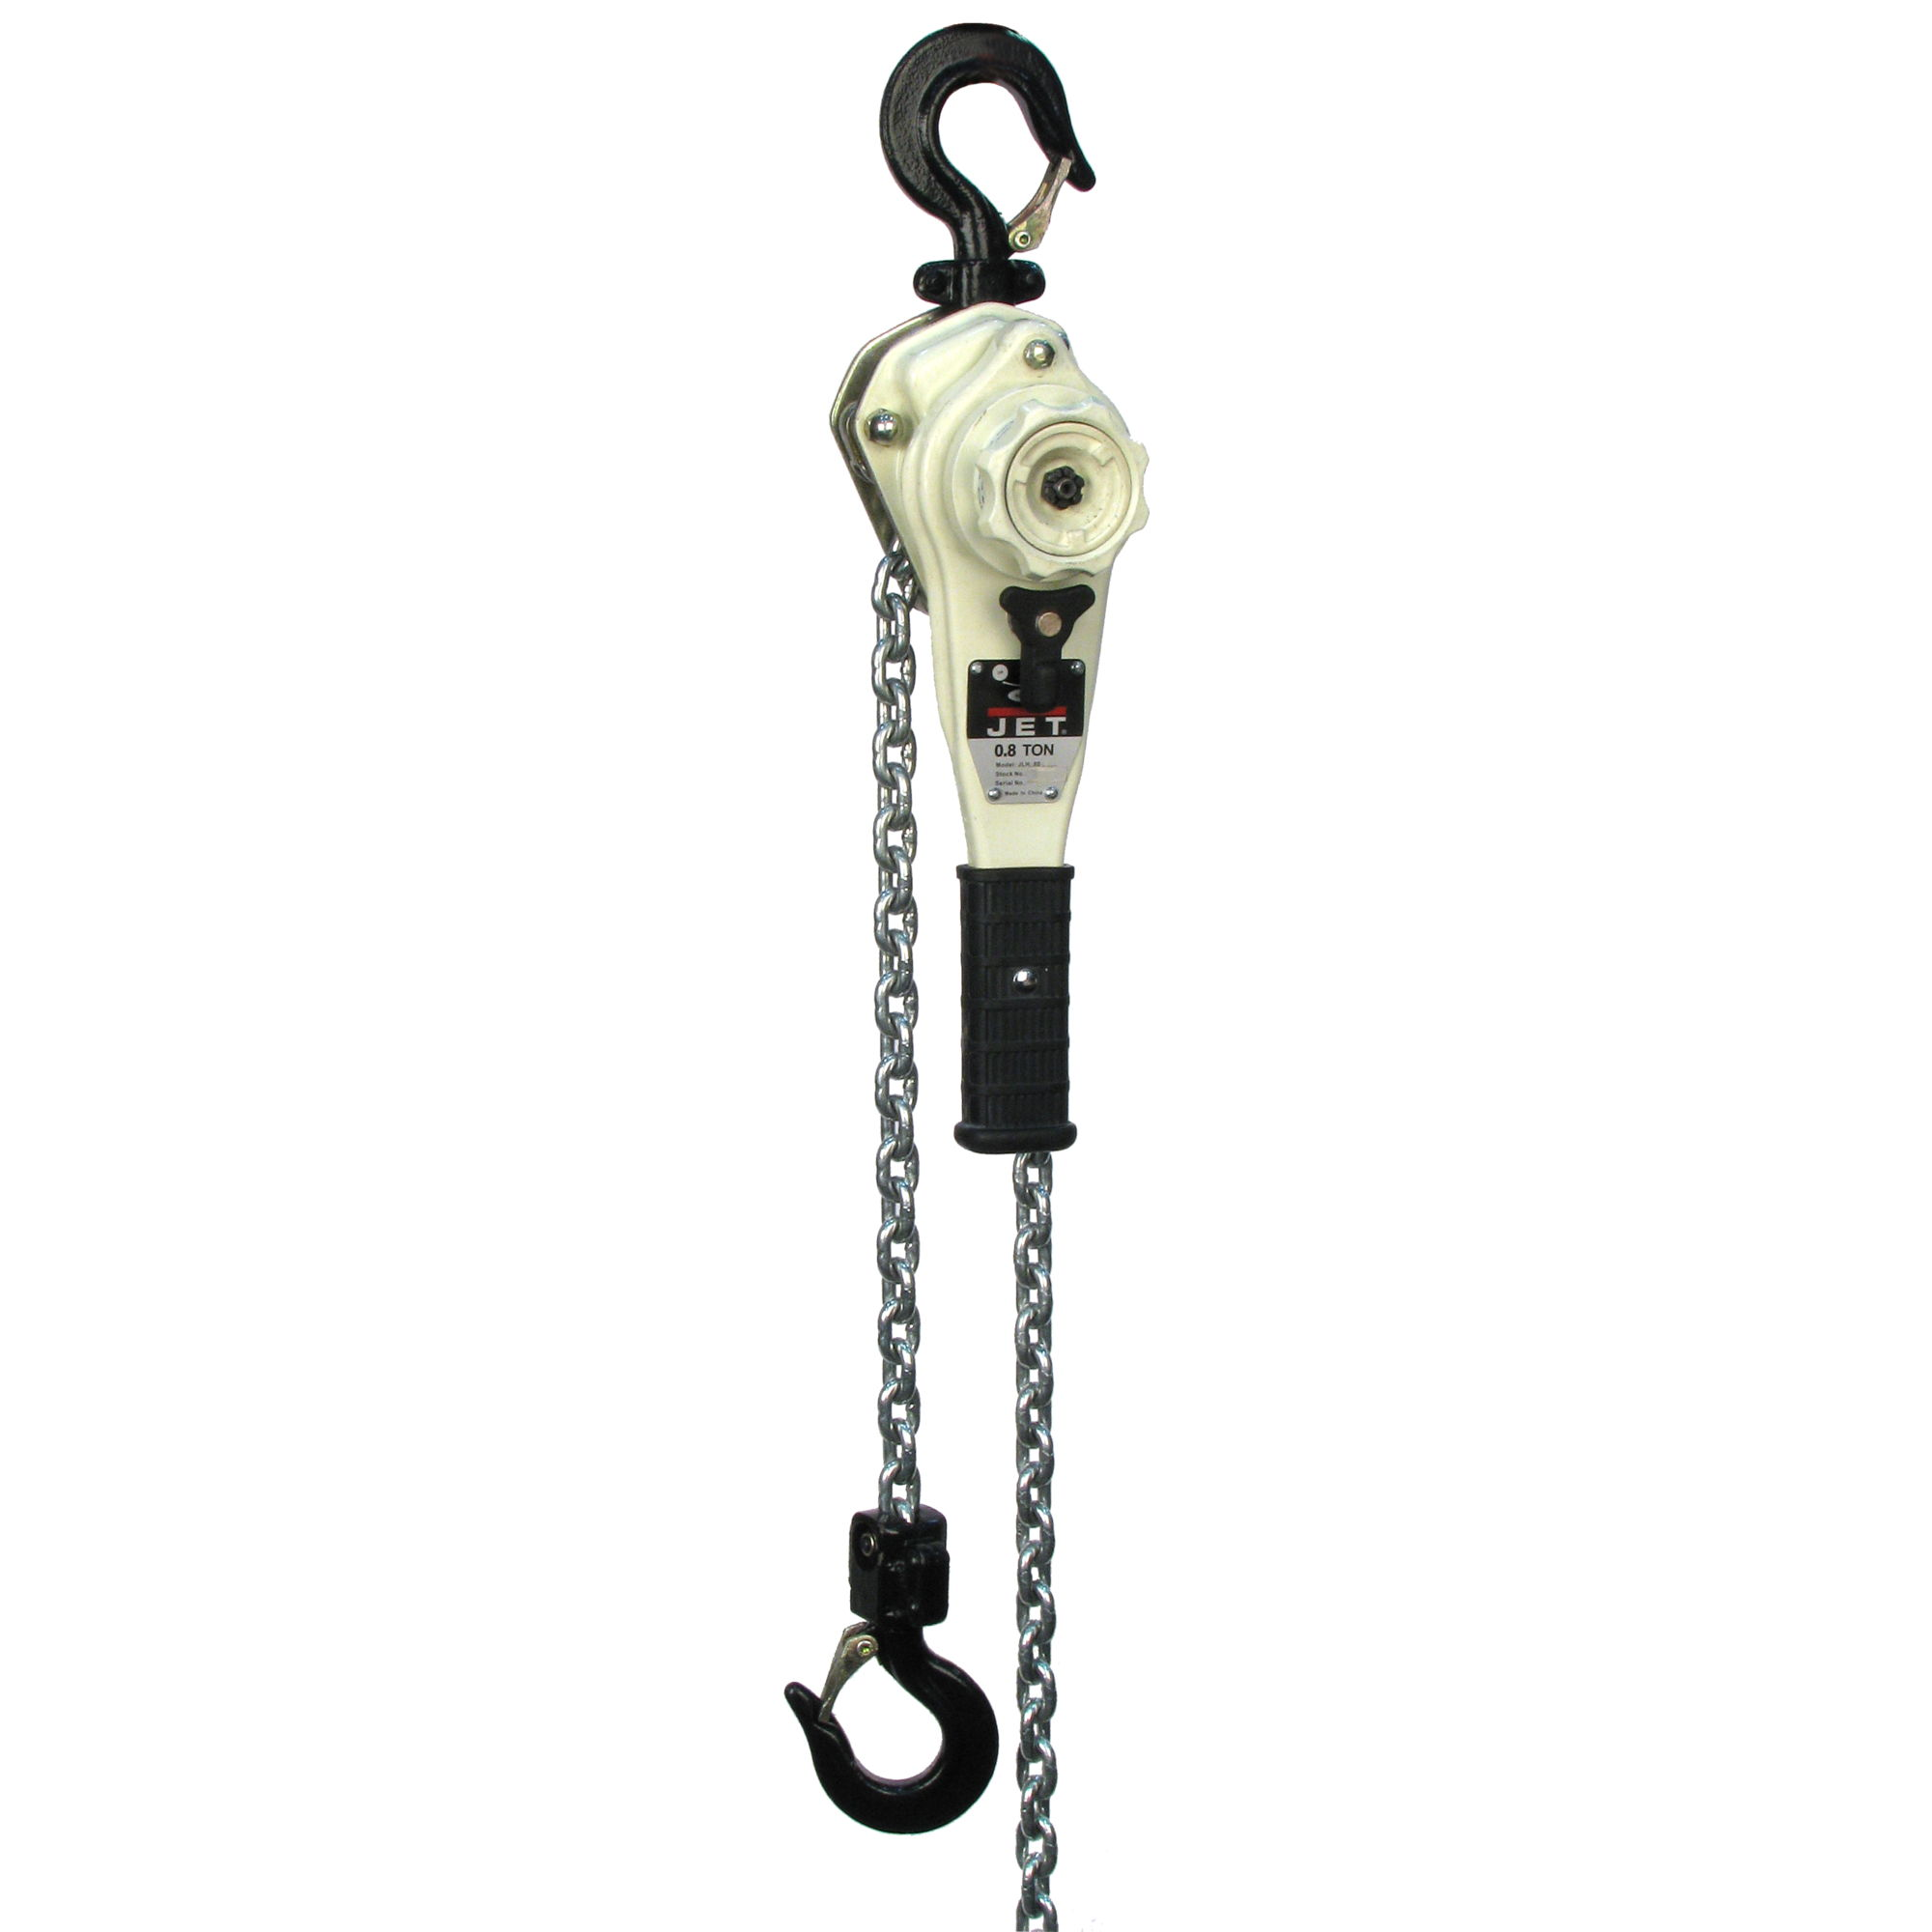 JET JLH-100WO-20 1 Ton Lever Hoist with 20' Lift and Overload Protection